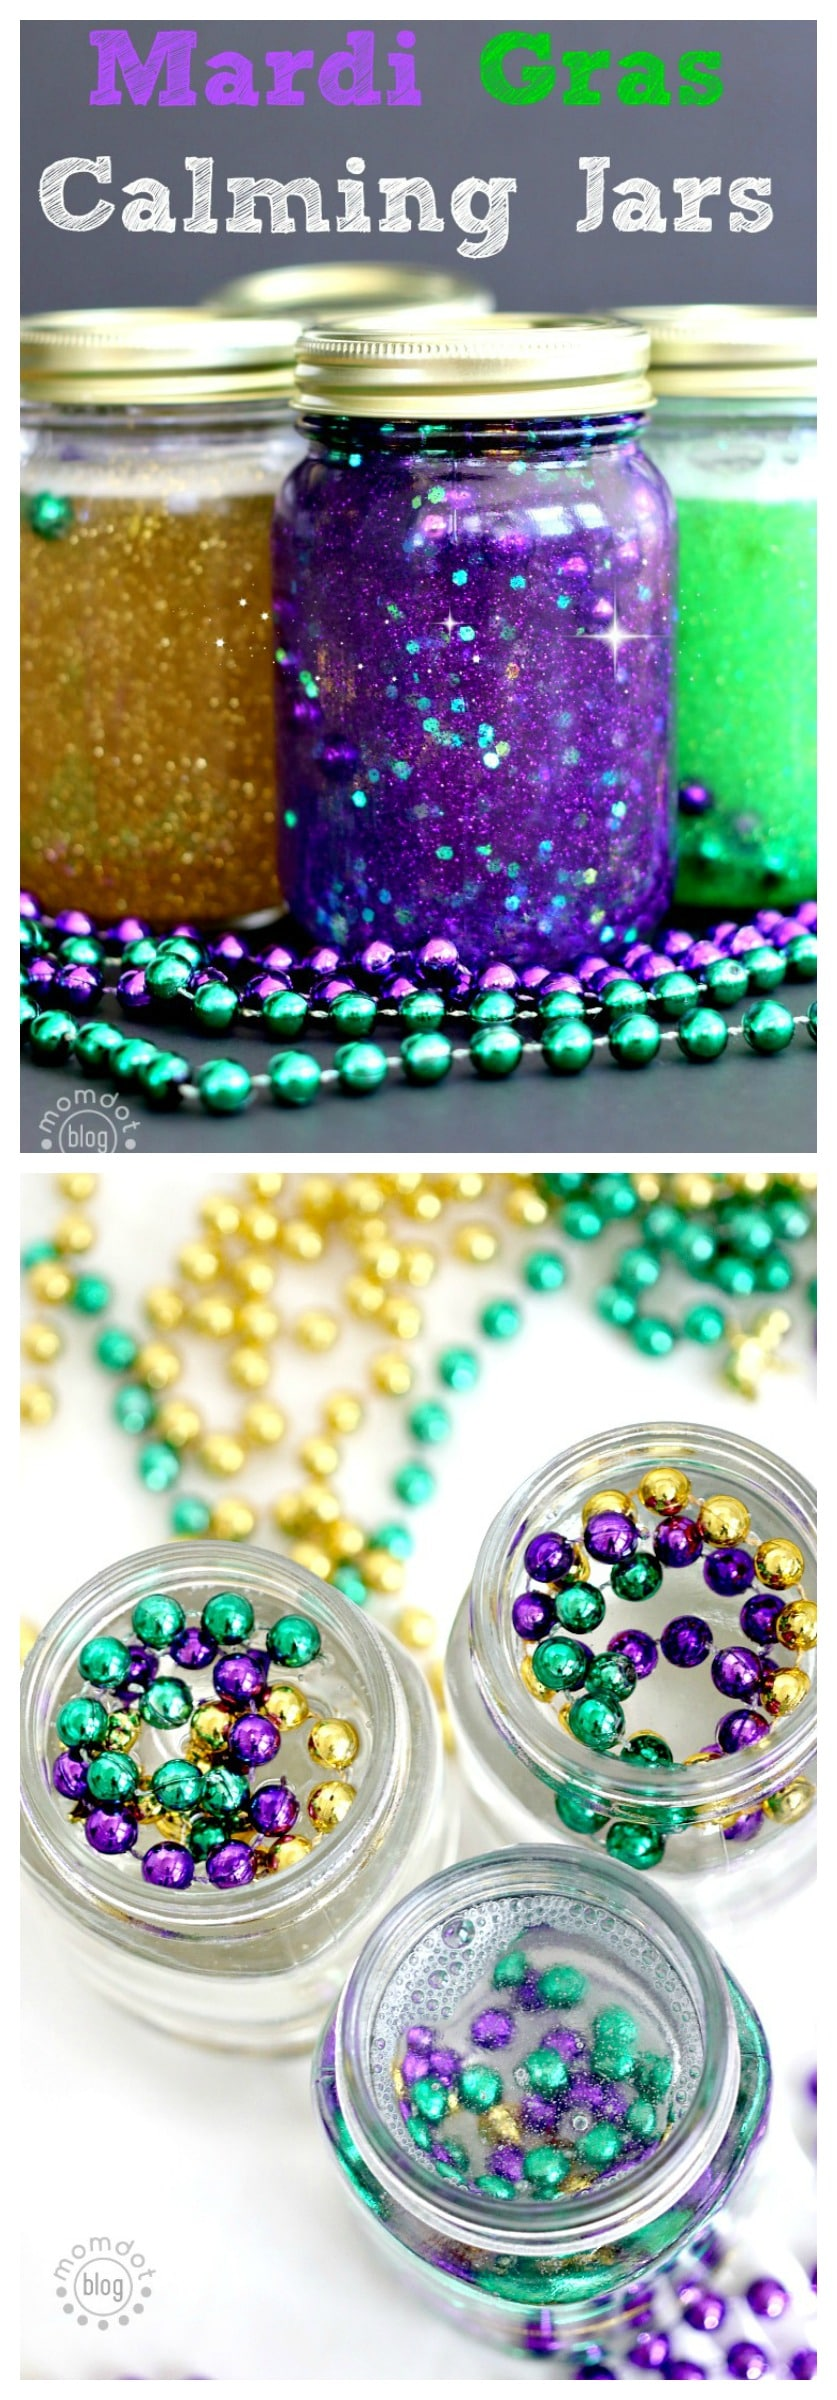 Calm Down Jar: Make a Mardi Gras Calm Down jar with beautiful beads, sit down and have quiet time with discovery, calming and peace